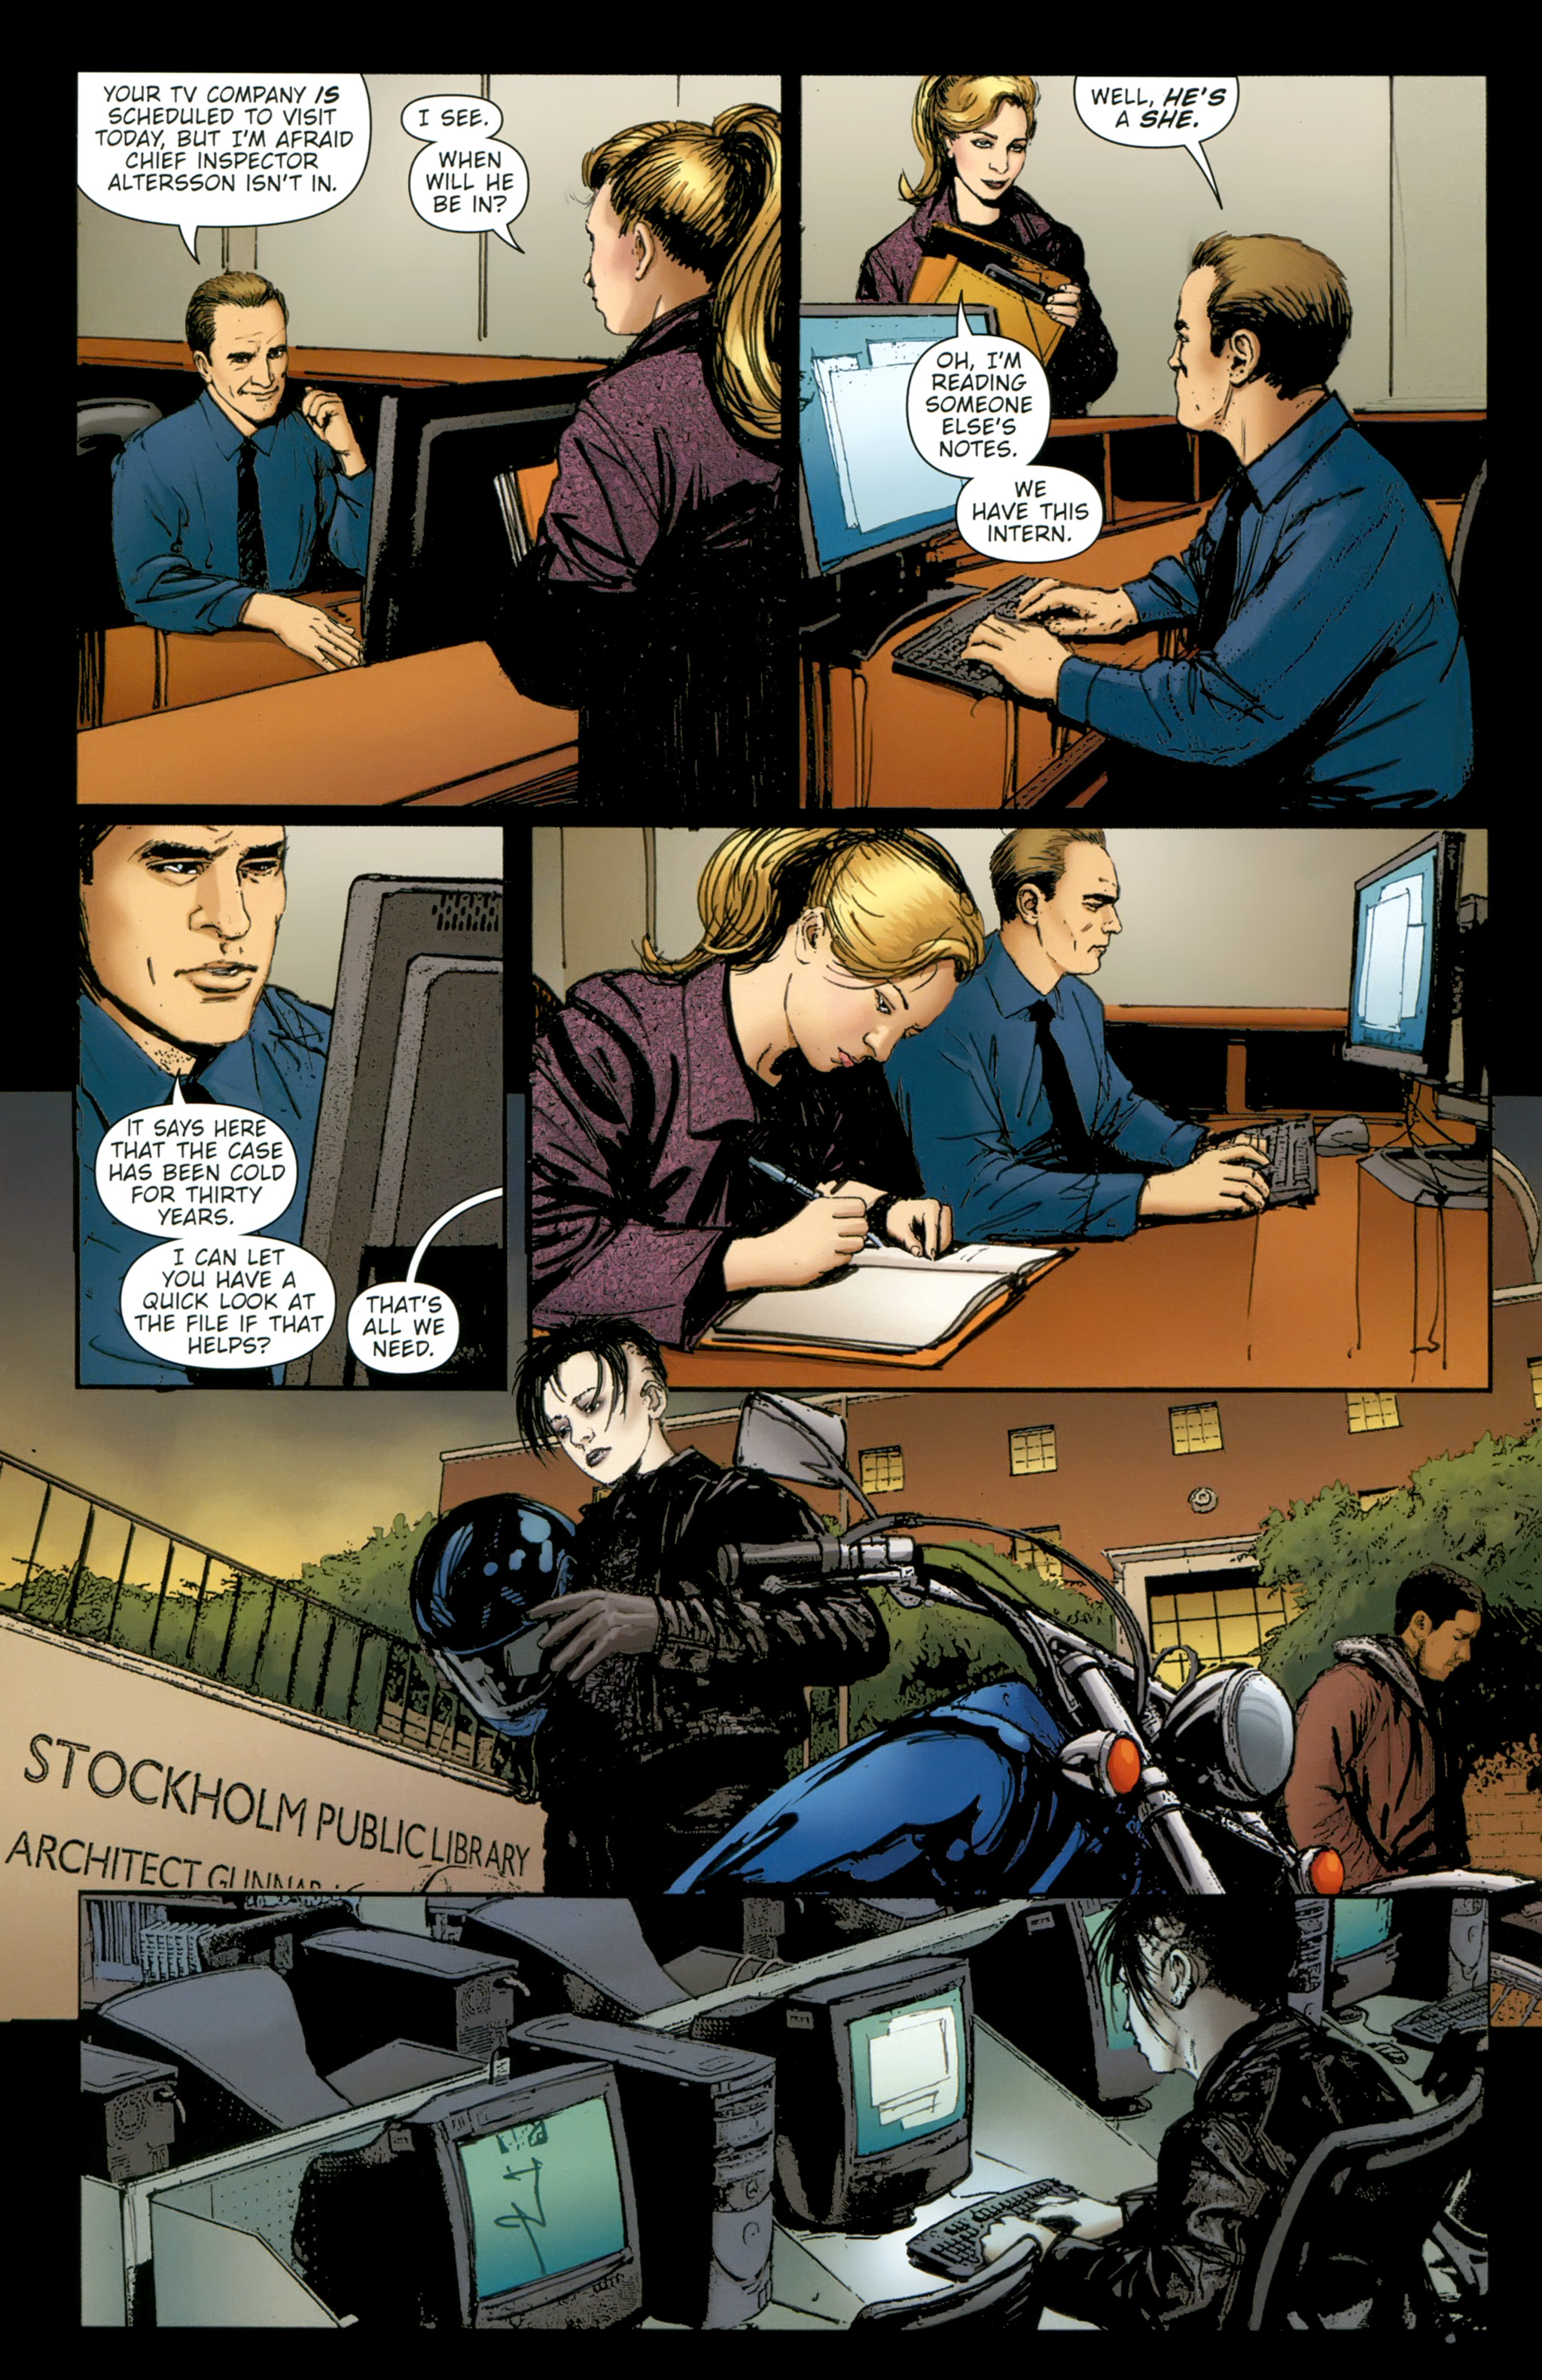 Read online The Girl With the Dragon Tattoo comic -  Issue # TPB 2 - 56